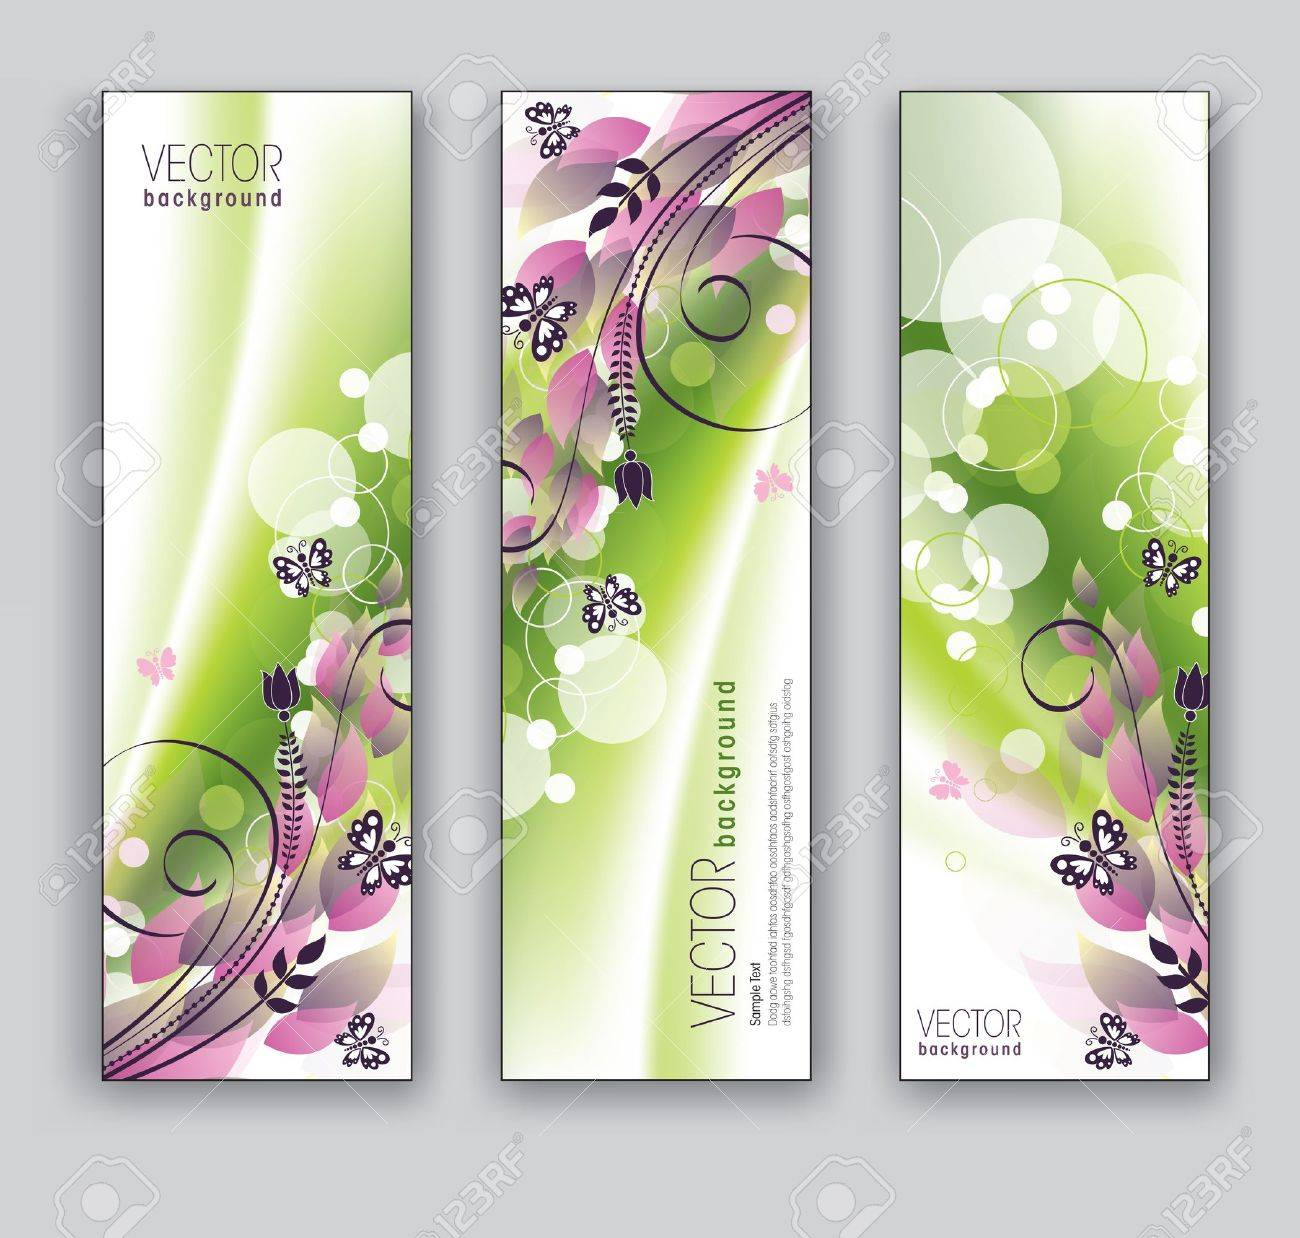 Banners  Abstract Backgrounds  Floral Theme Stock Vector - 17998307